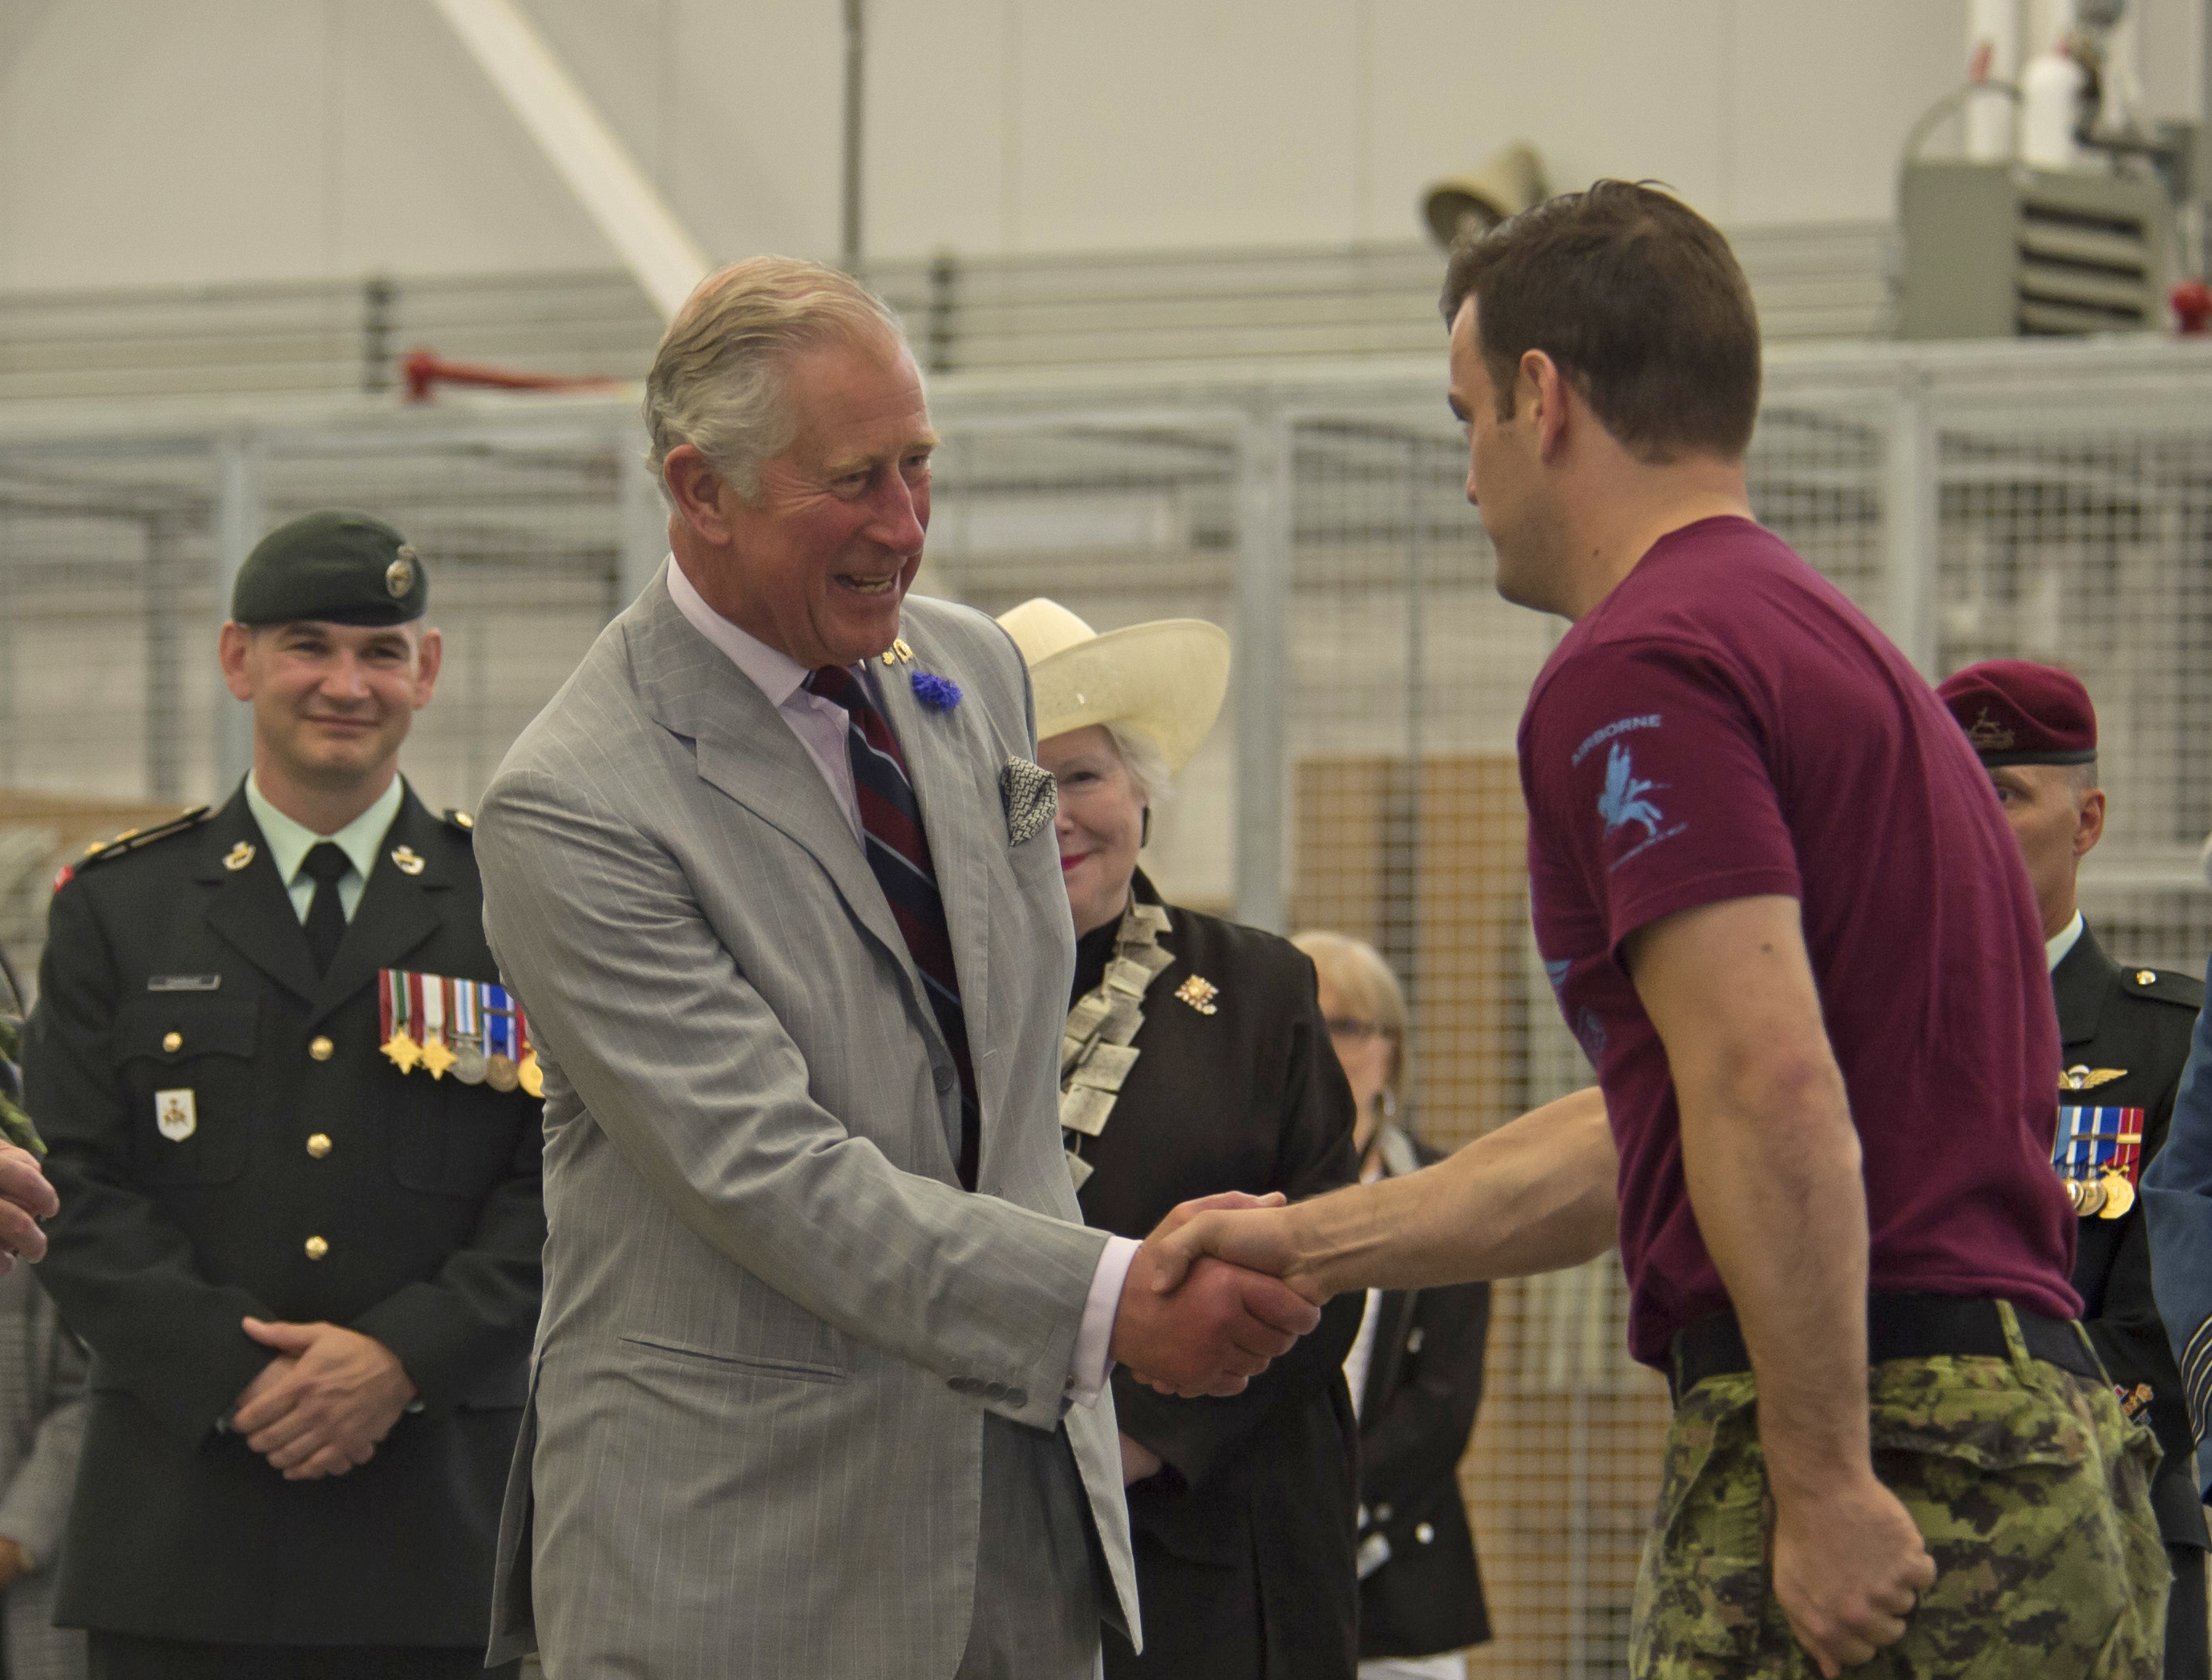 Prince Charles shakes hands with Corporal Marc Dumaine, a parachute systems packer at the Canadian Army Advanced Warfare Centre in Trenton, Ontario, on June 30, 2017. PHOTO: Corporal Ryan Moulton, TN11-2017-0398-018